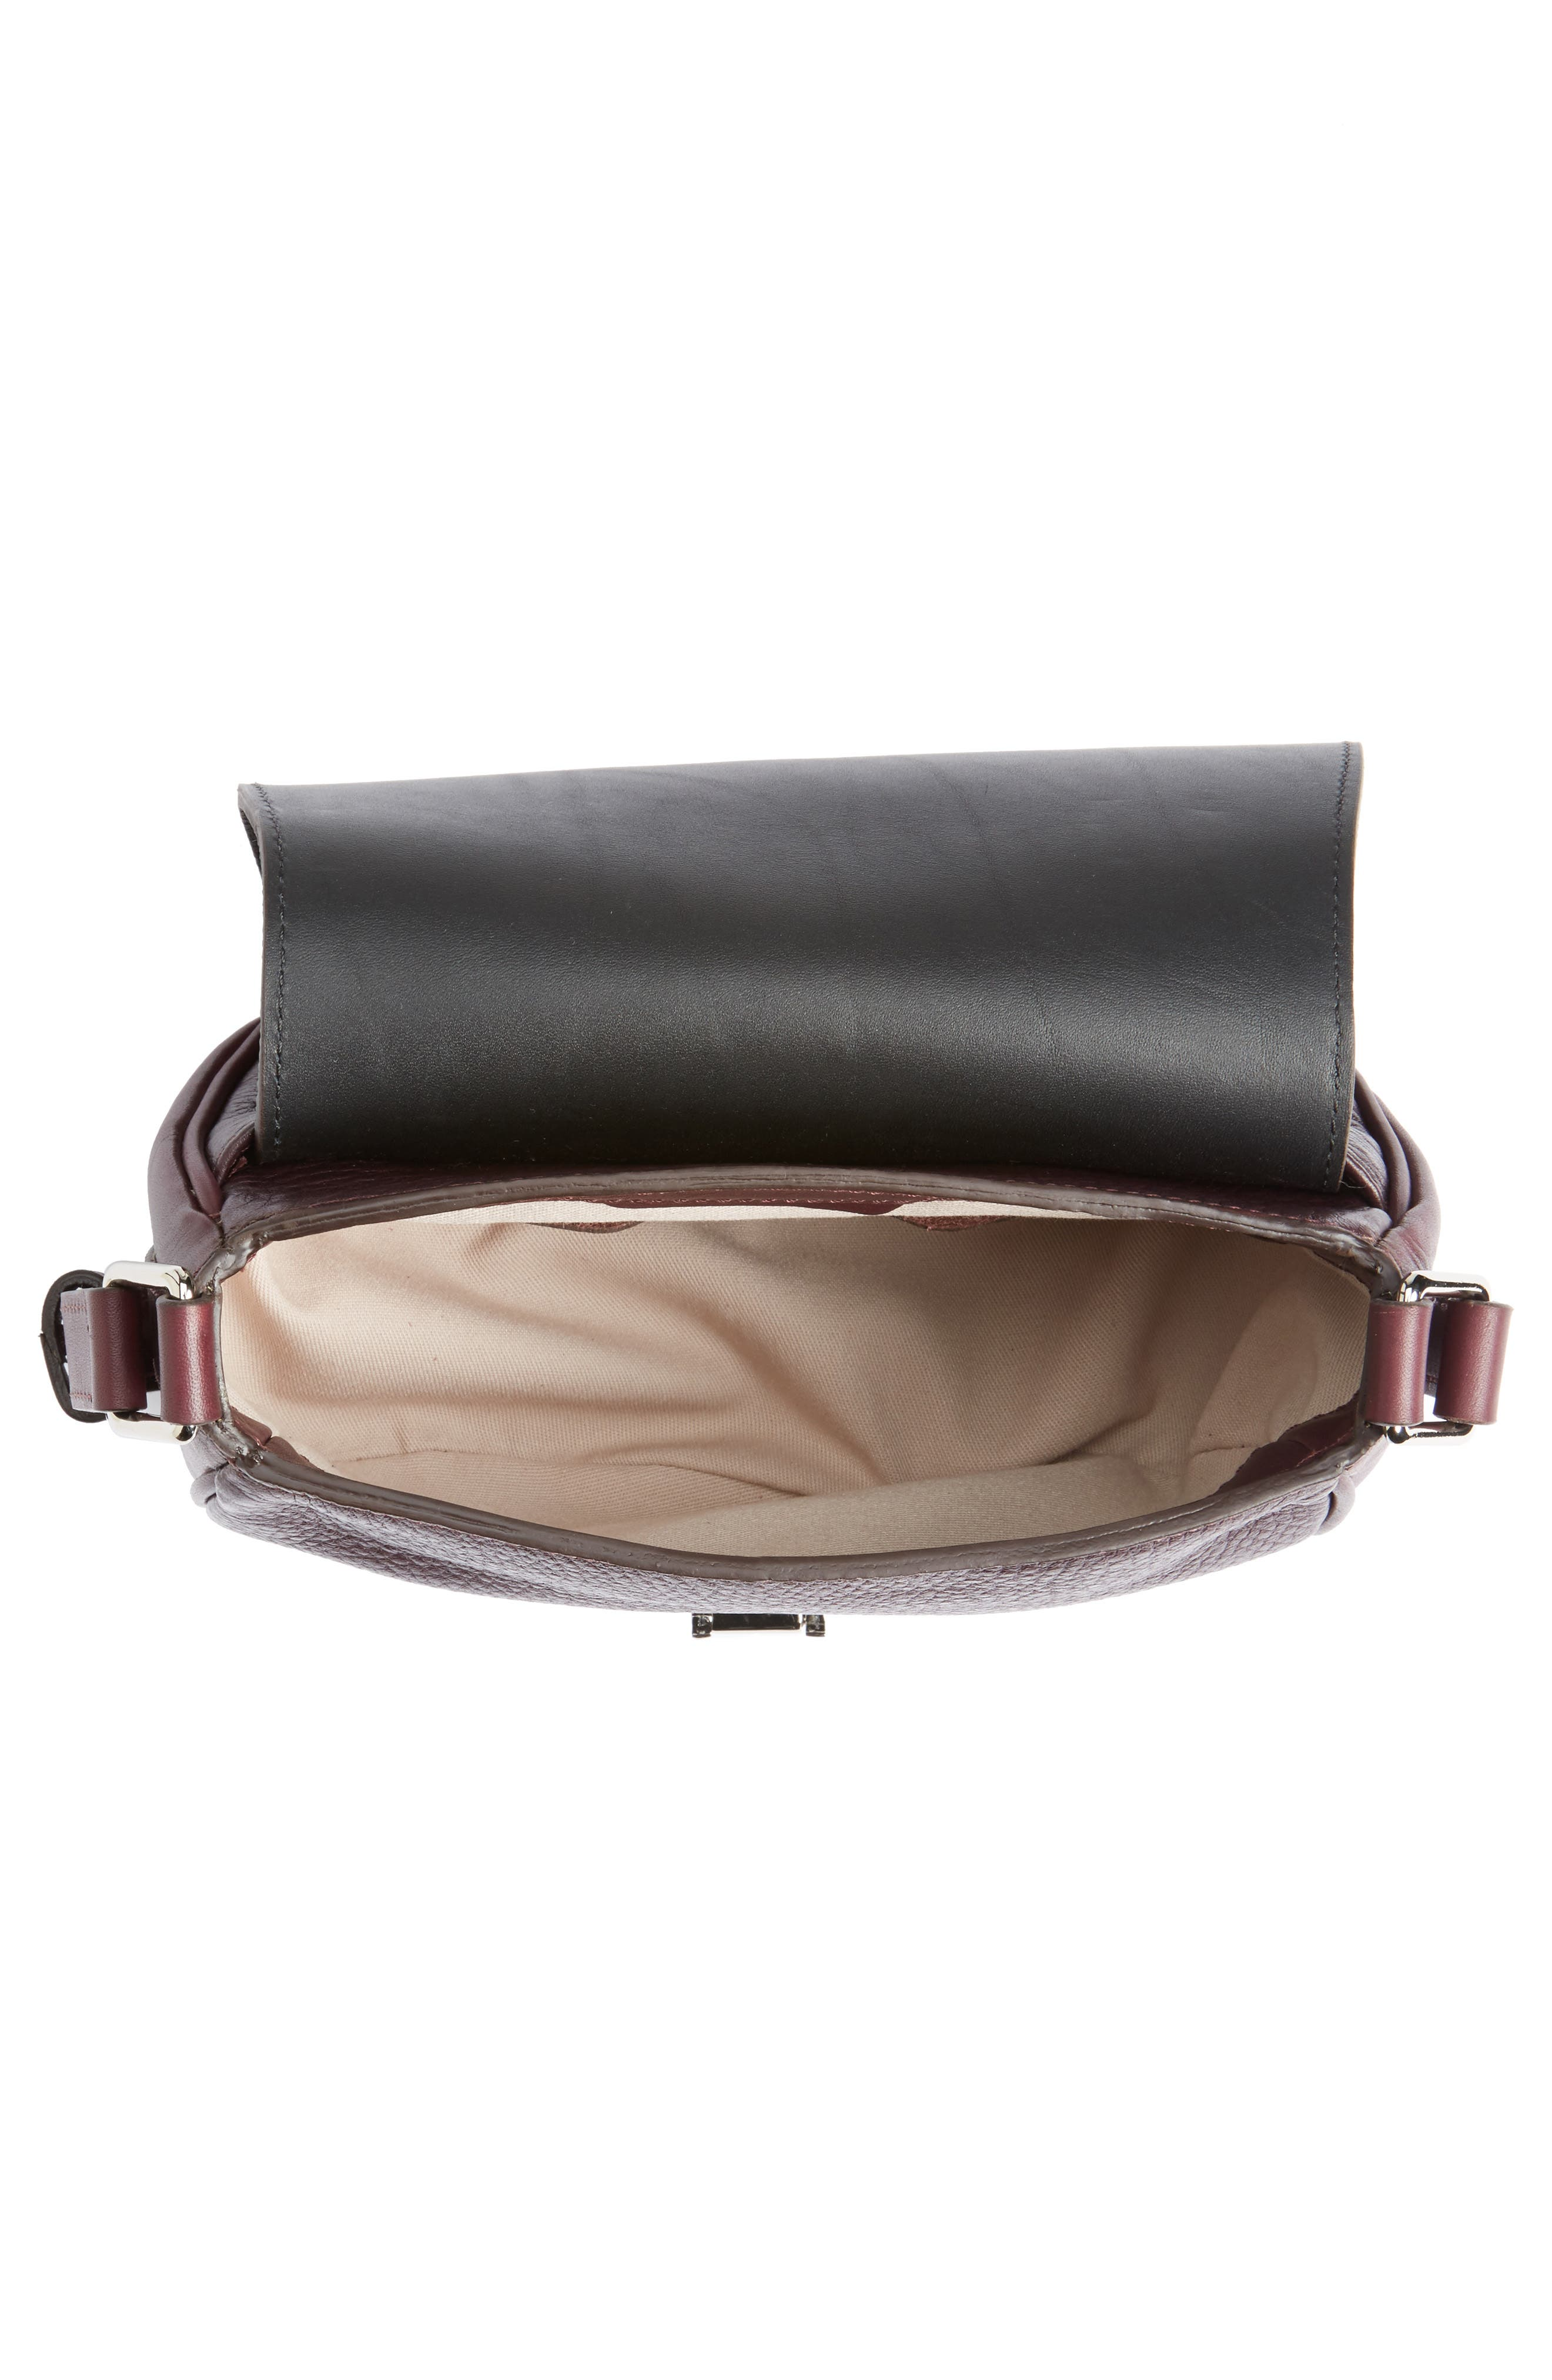 Calfskin Leather Shoulder Bag,                             Alternate thumbnail 4, color,                             Aubergine